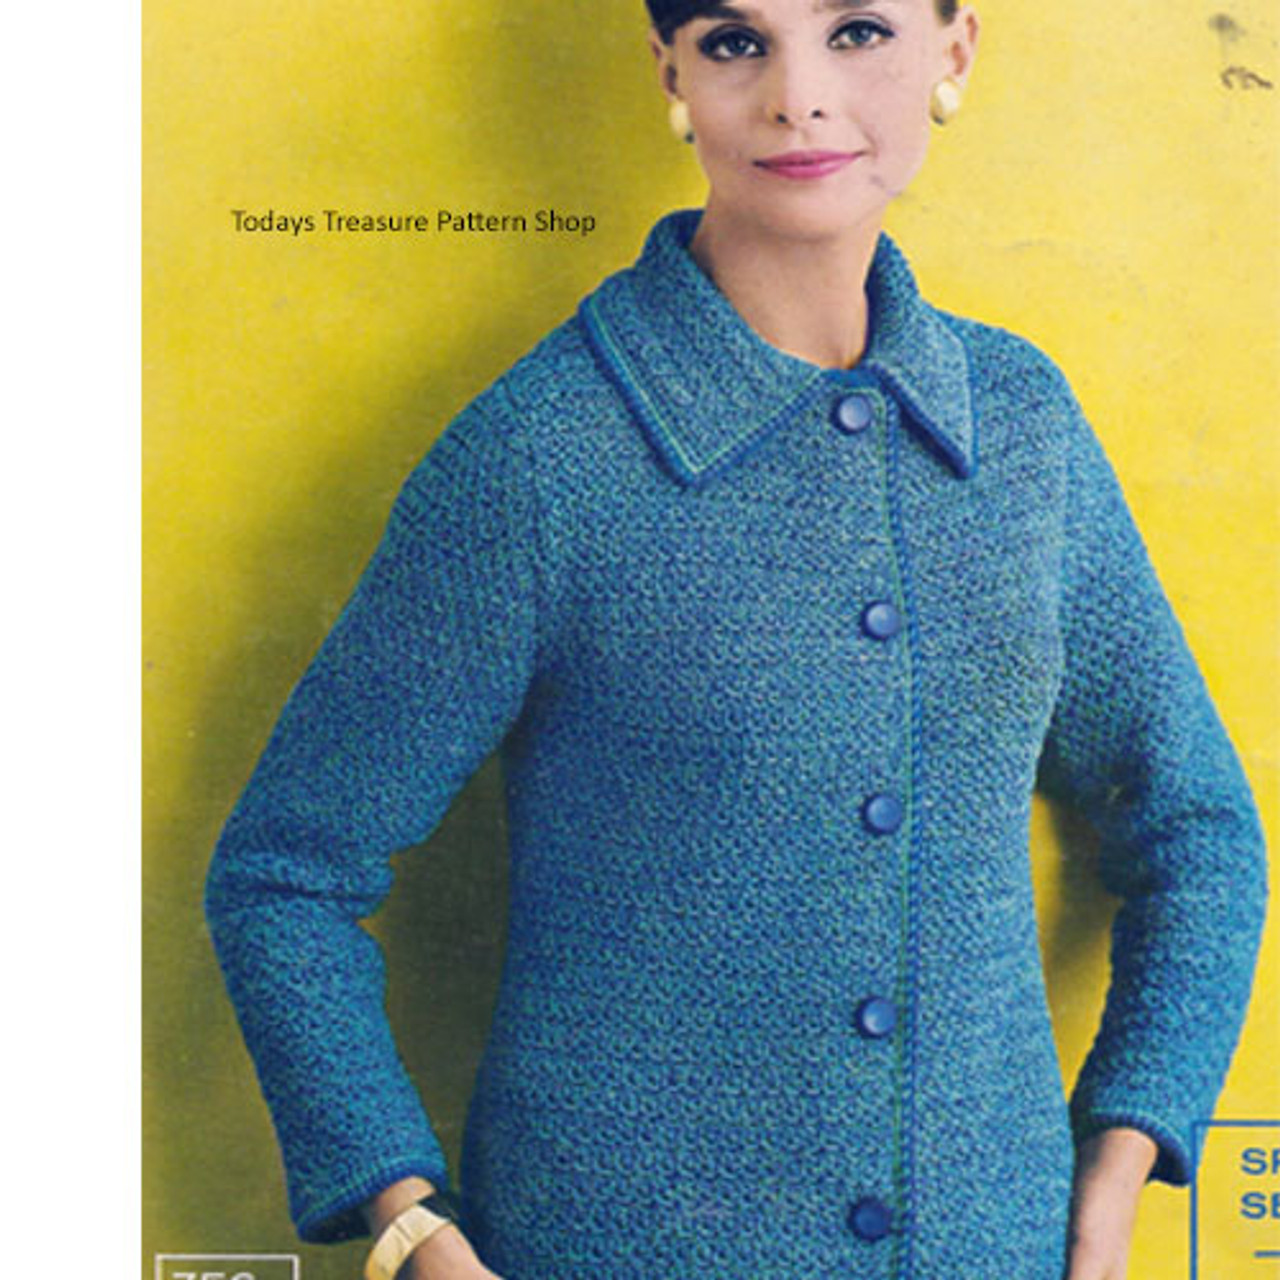 Crochet Jacket pattern with notched collar